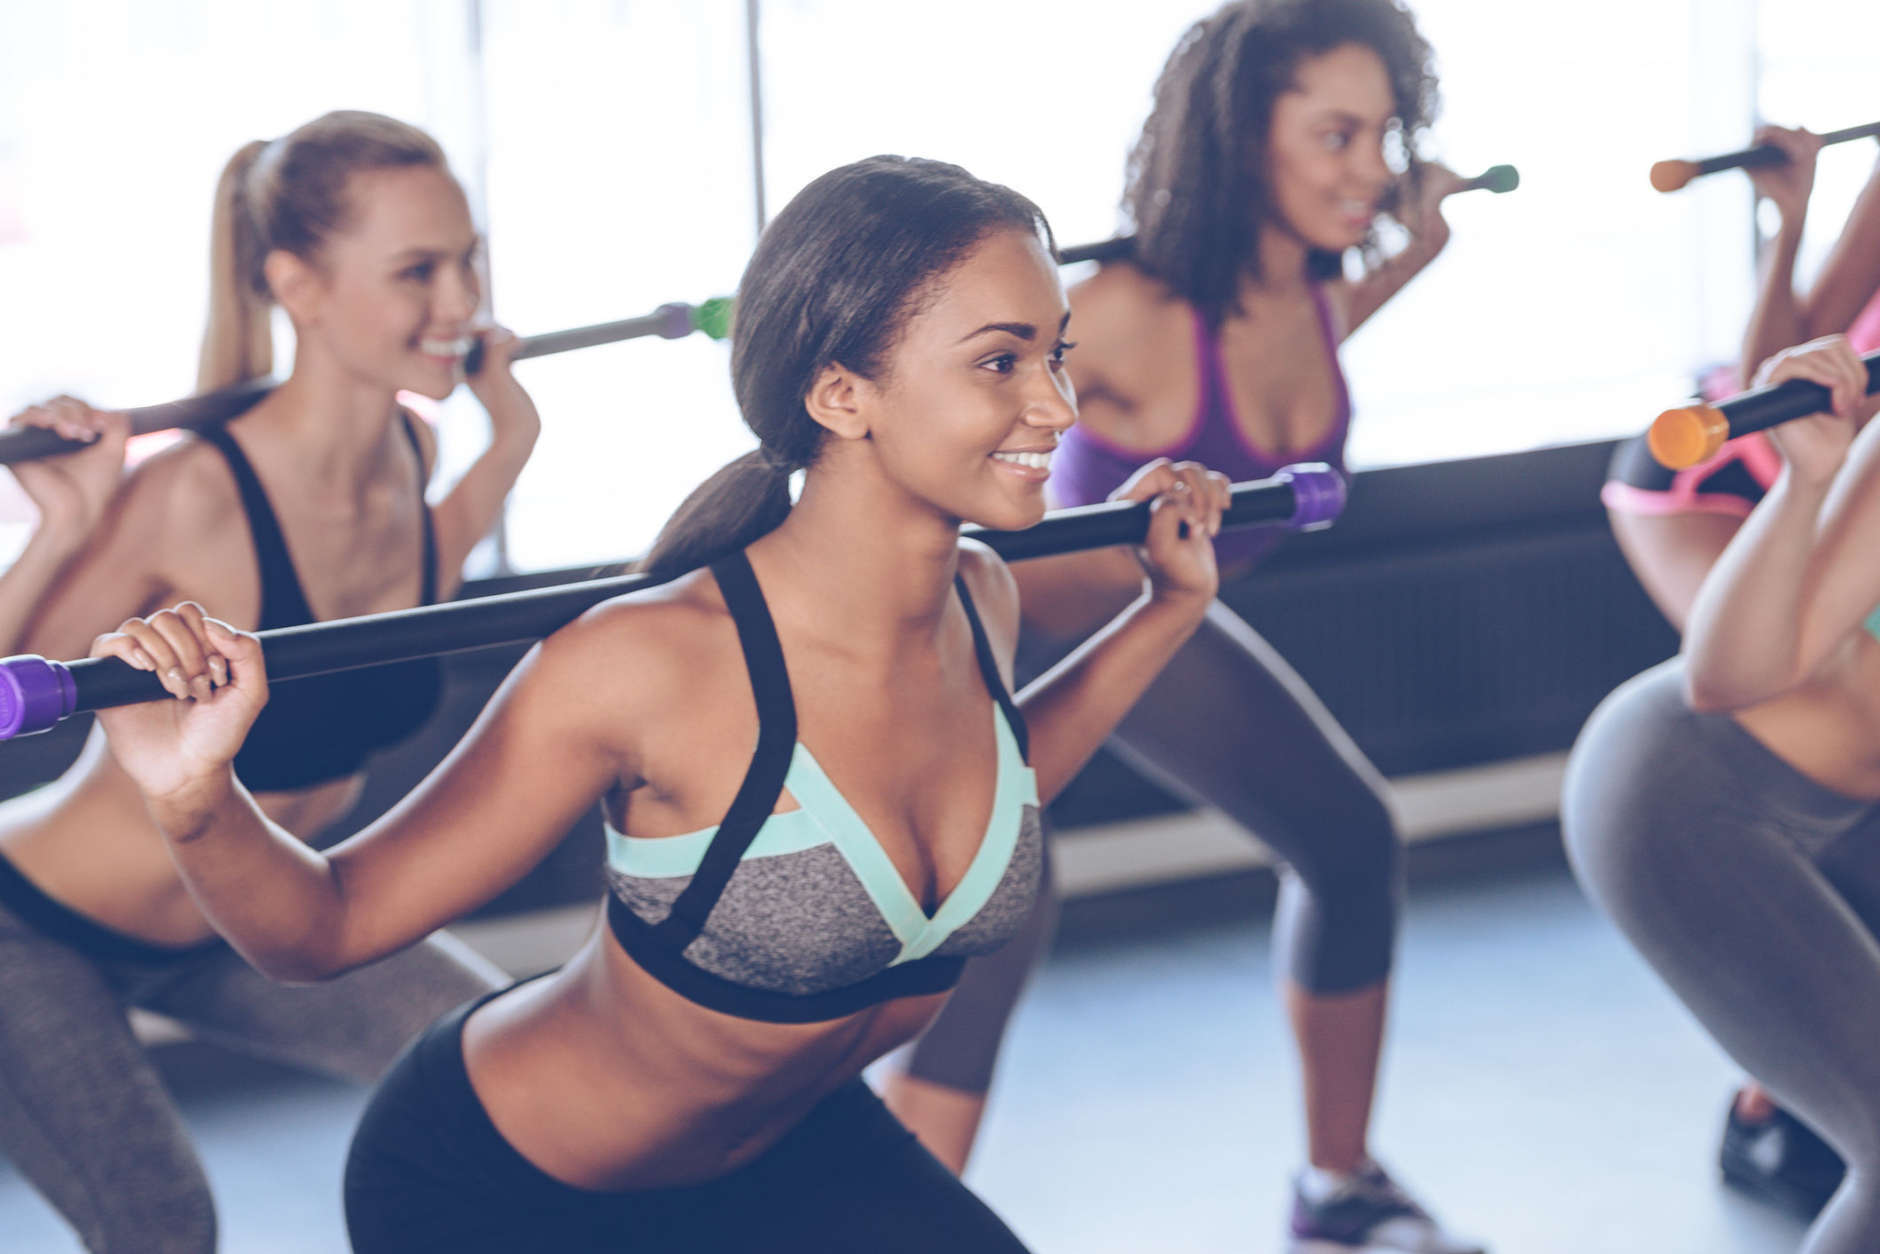 Beautiful young women with perfect bodies in sportswear exercising with barre while standing in front of window at gym